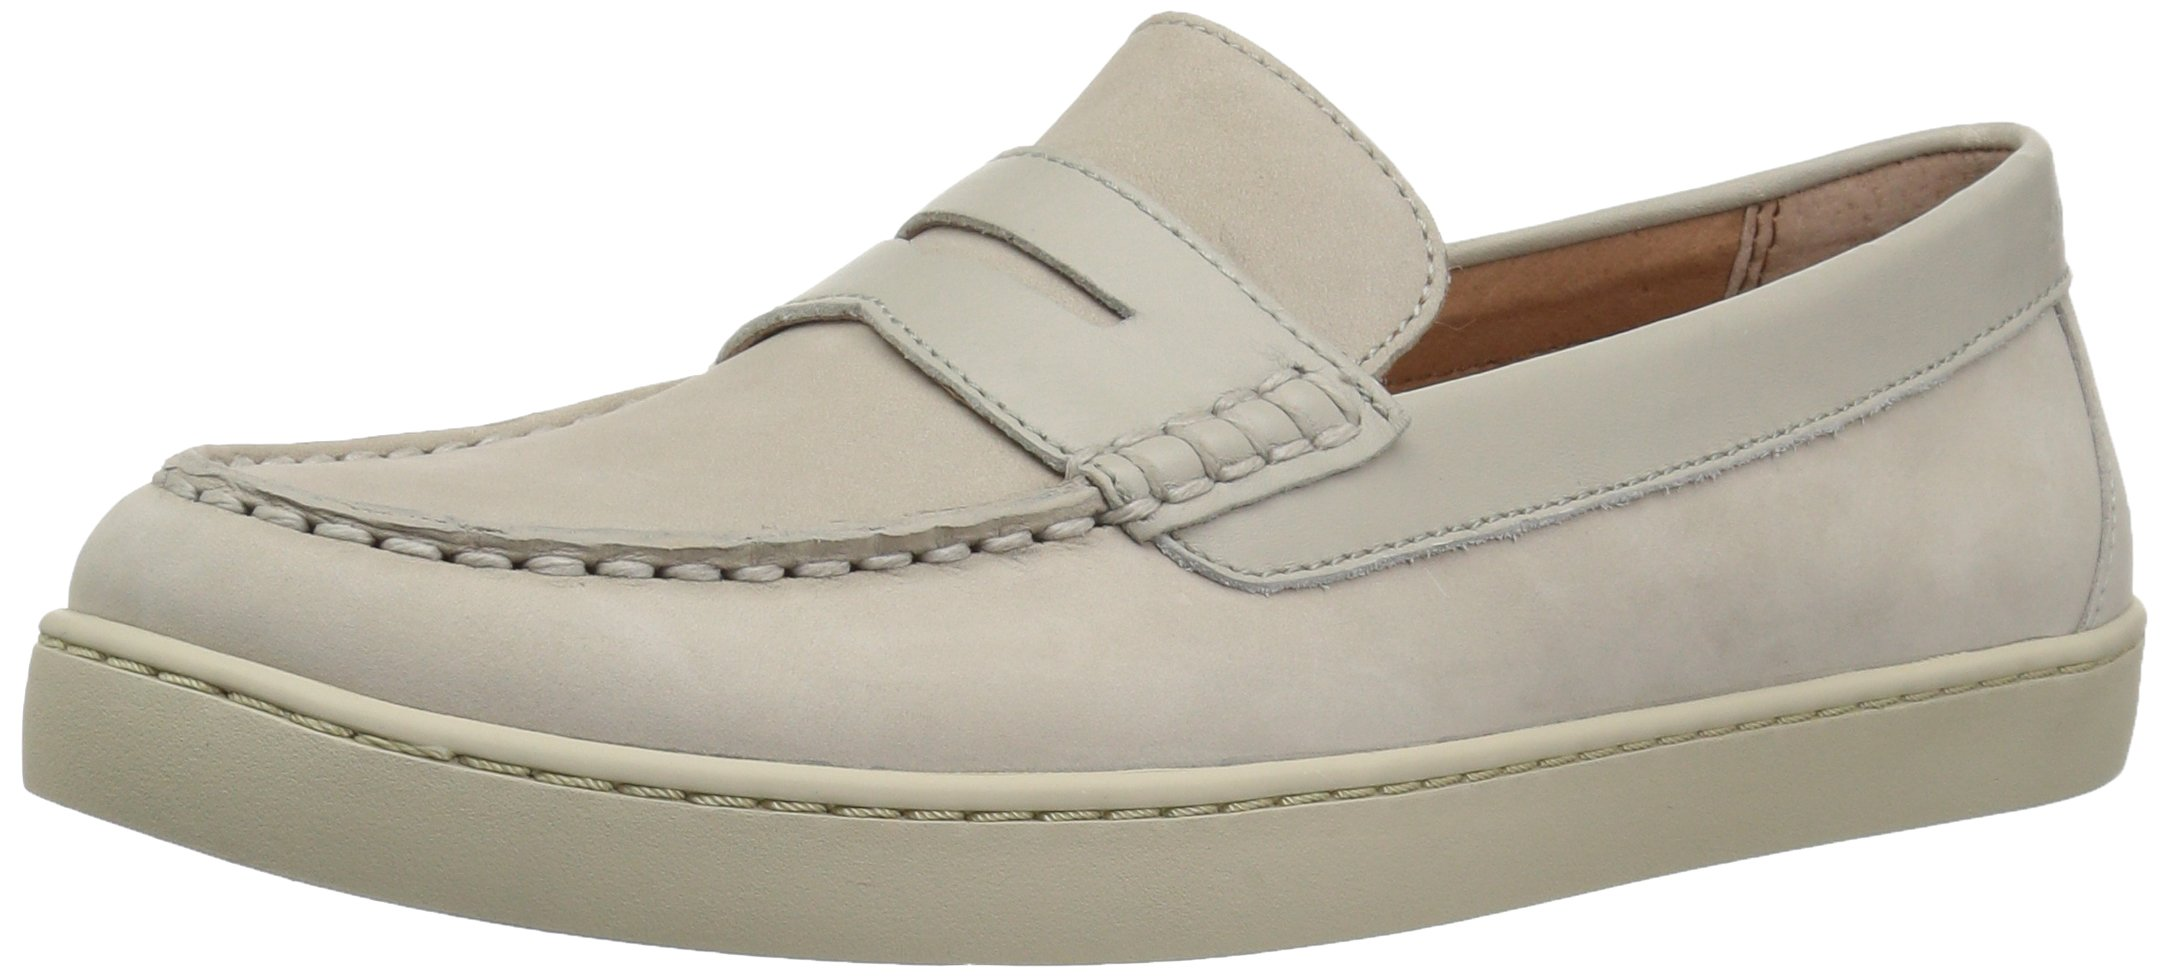 206 Collective Men's Seabeck Boat/Penny Loafer on Cupsole Sneaker, Beige Nubuck, 13.5 D US